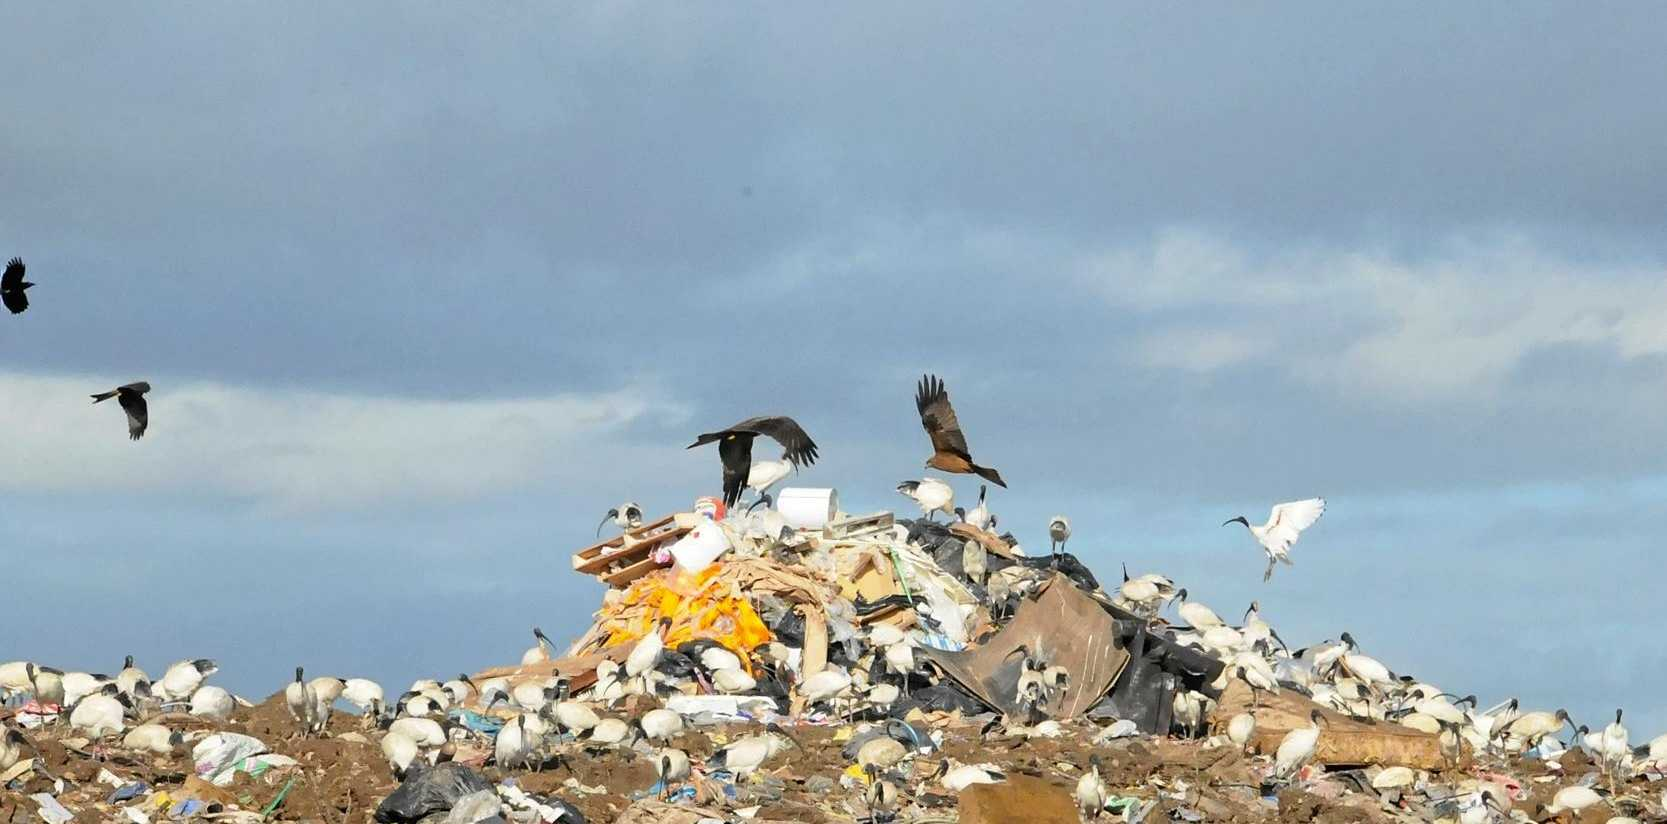 Gympie Regional Council will vote on a proposal to shrink hours, close sites at rubbish dumps around the region.